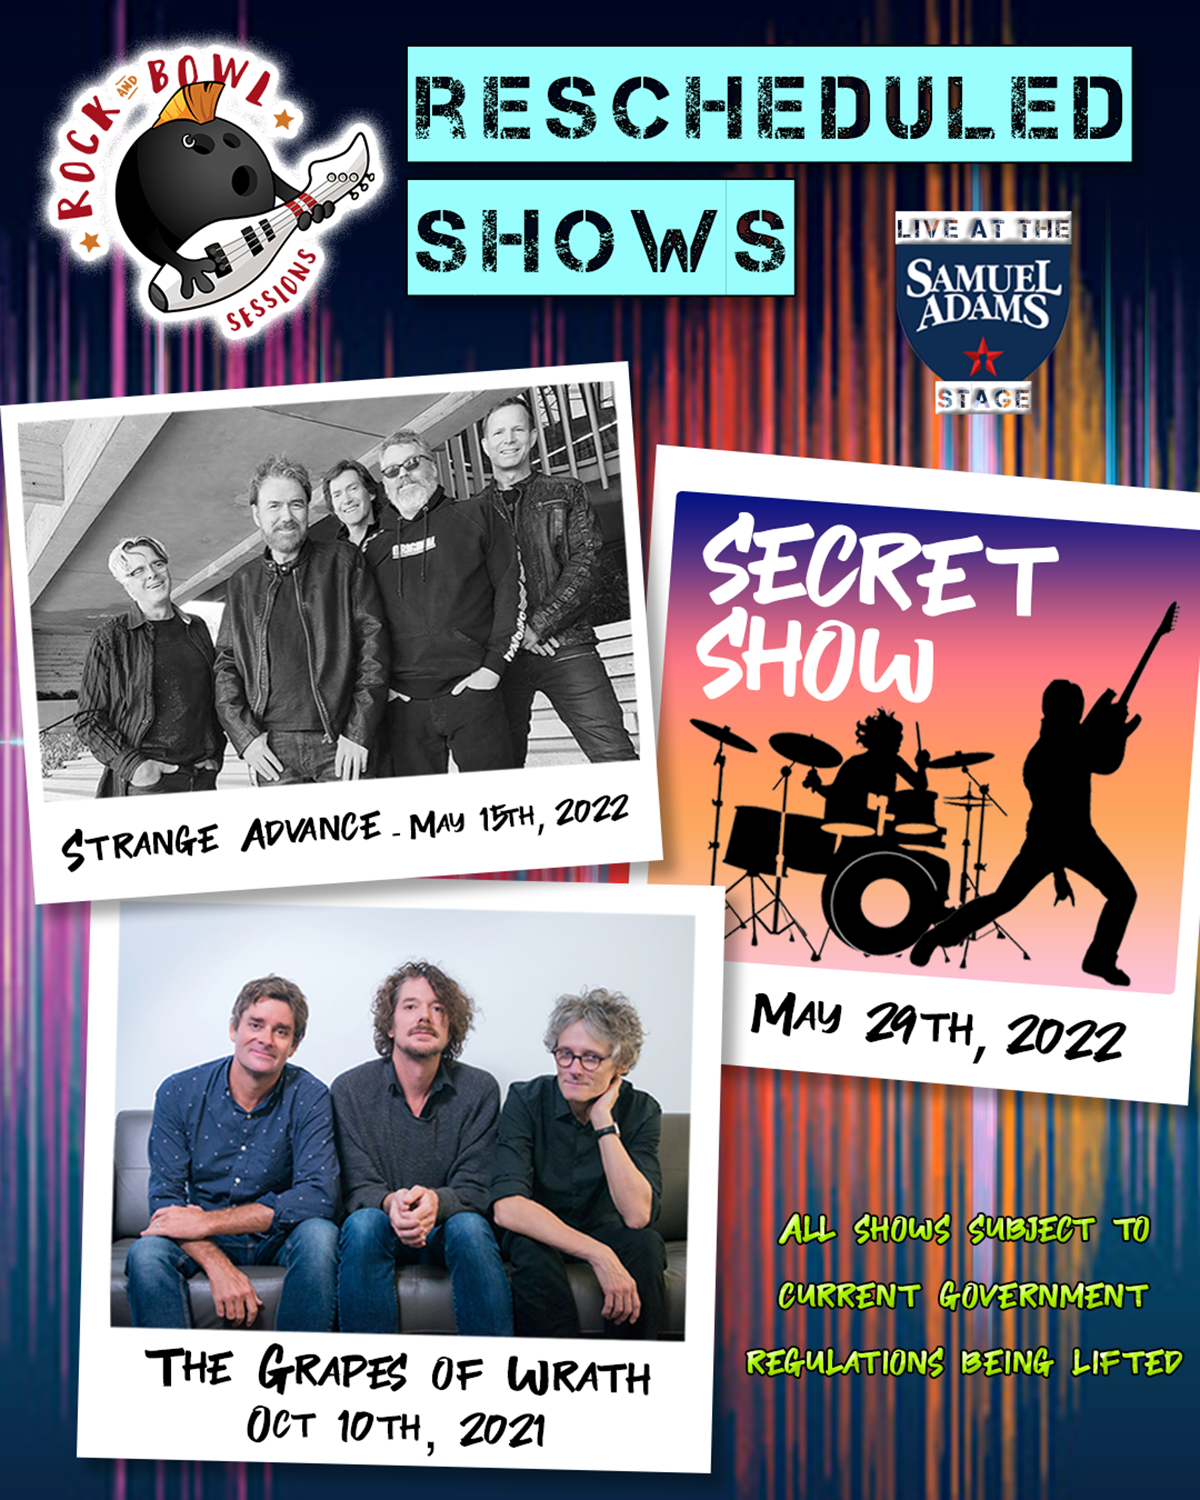 4th Annual Rock and Bowl Shows have been rescheduled. The Grapes of Wrath - Sunday - October 10, 2021 Strange Advance - Sunday - May 15, 2022 Secret Show - Sunday - May 29, 2022